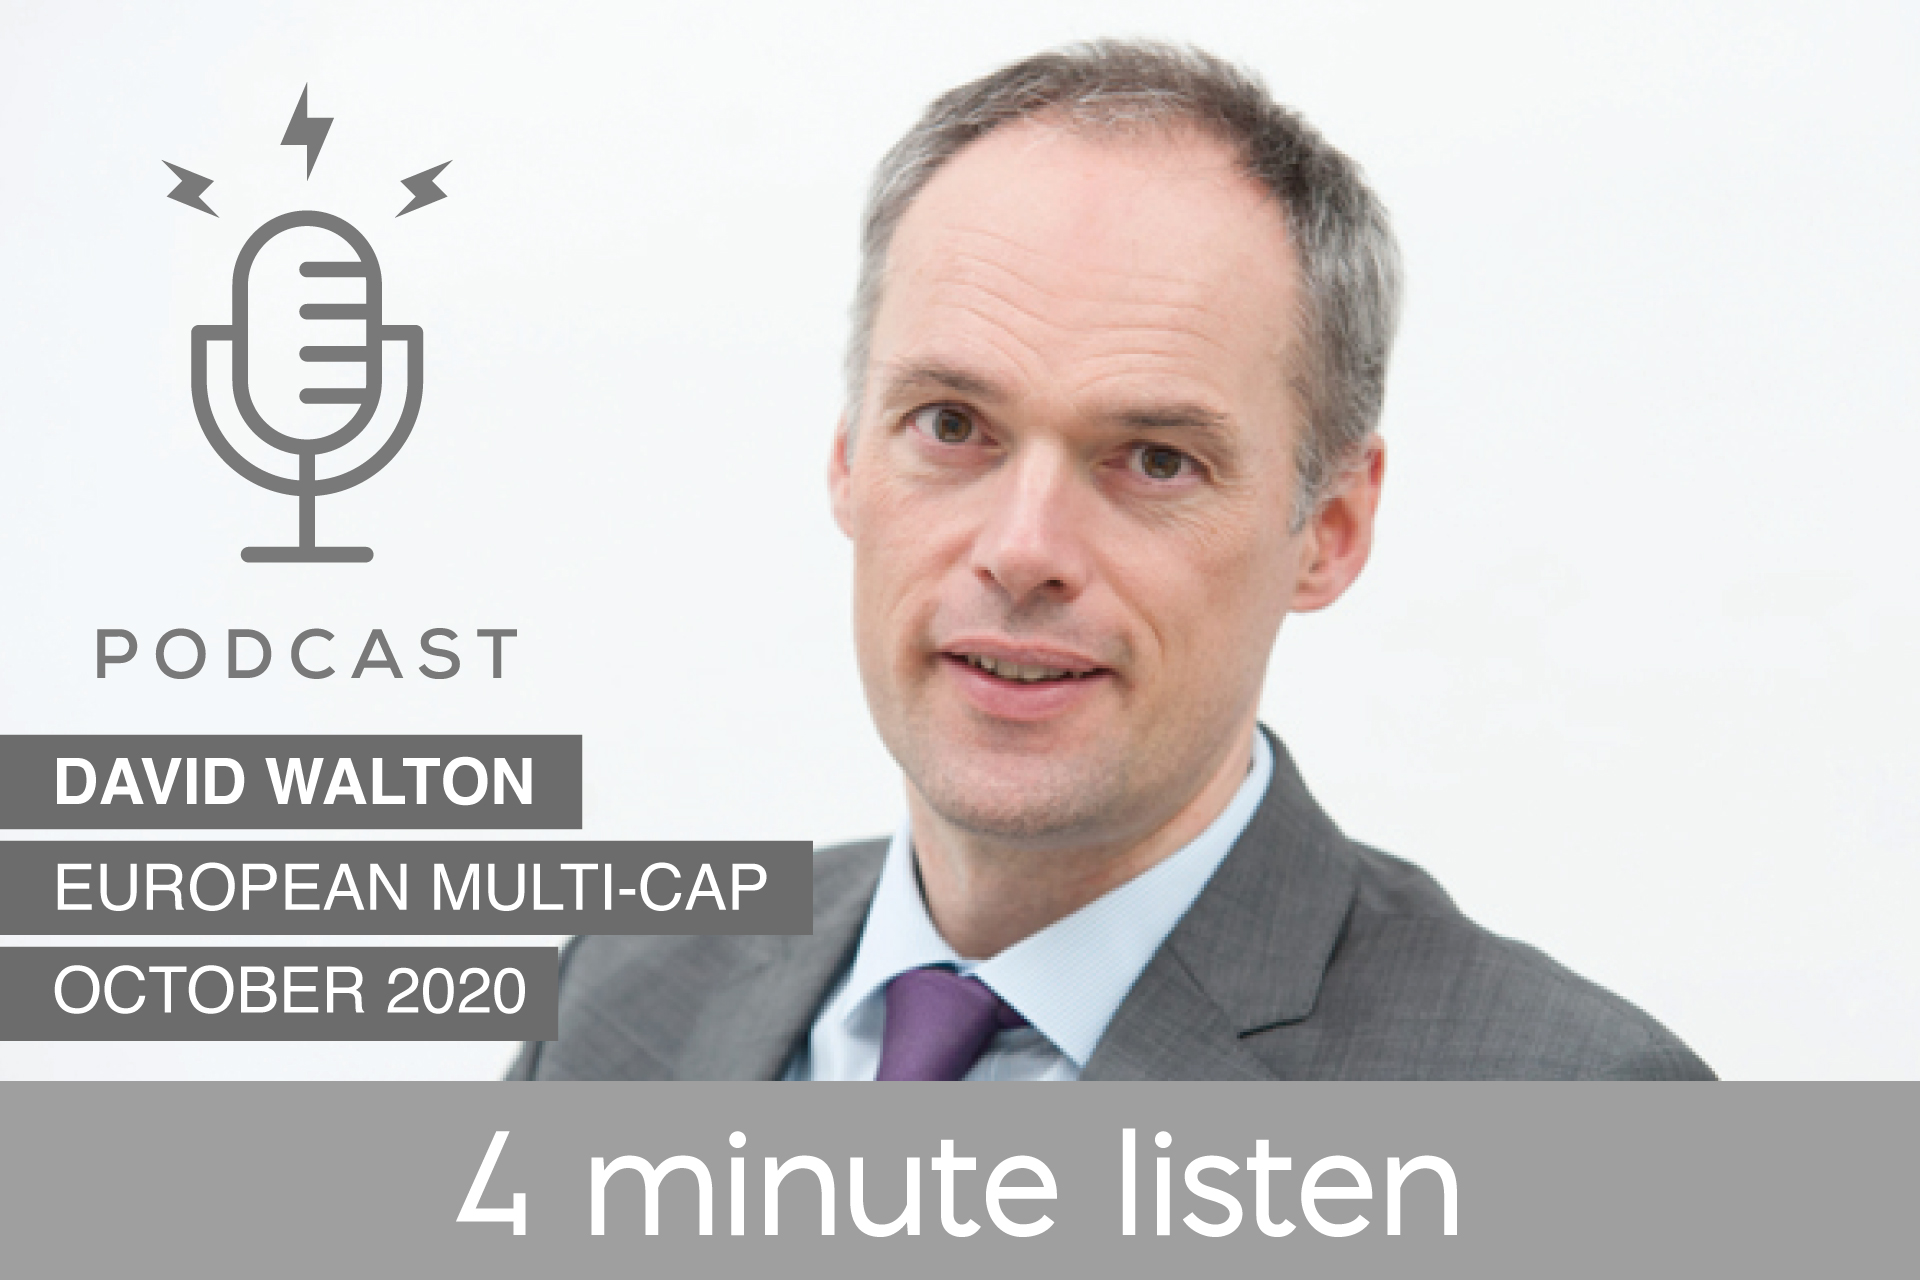 Marlborough European Multi-Cap Podcast October 2020